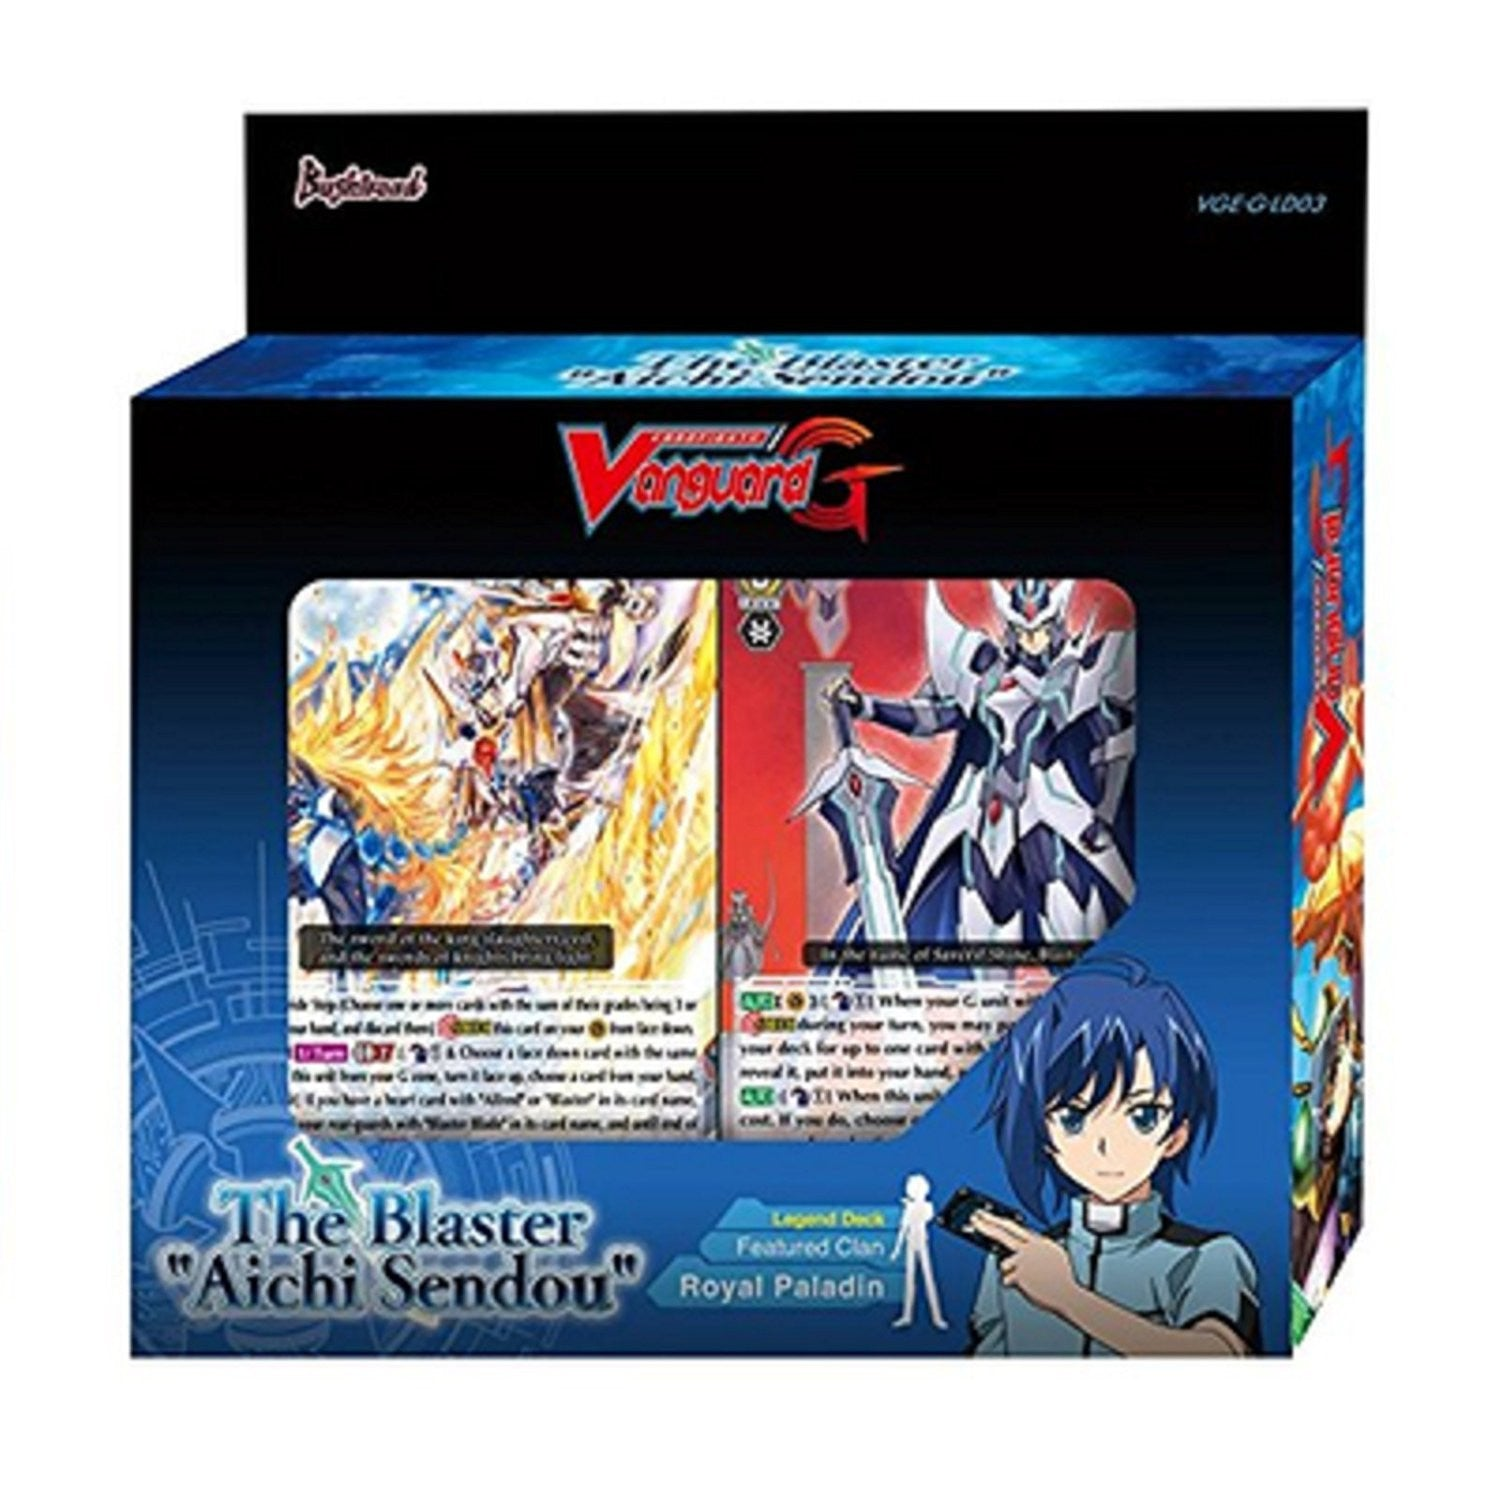 Cardfight!! Vanguard Blaster Aichi Legend Deck